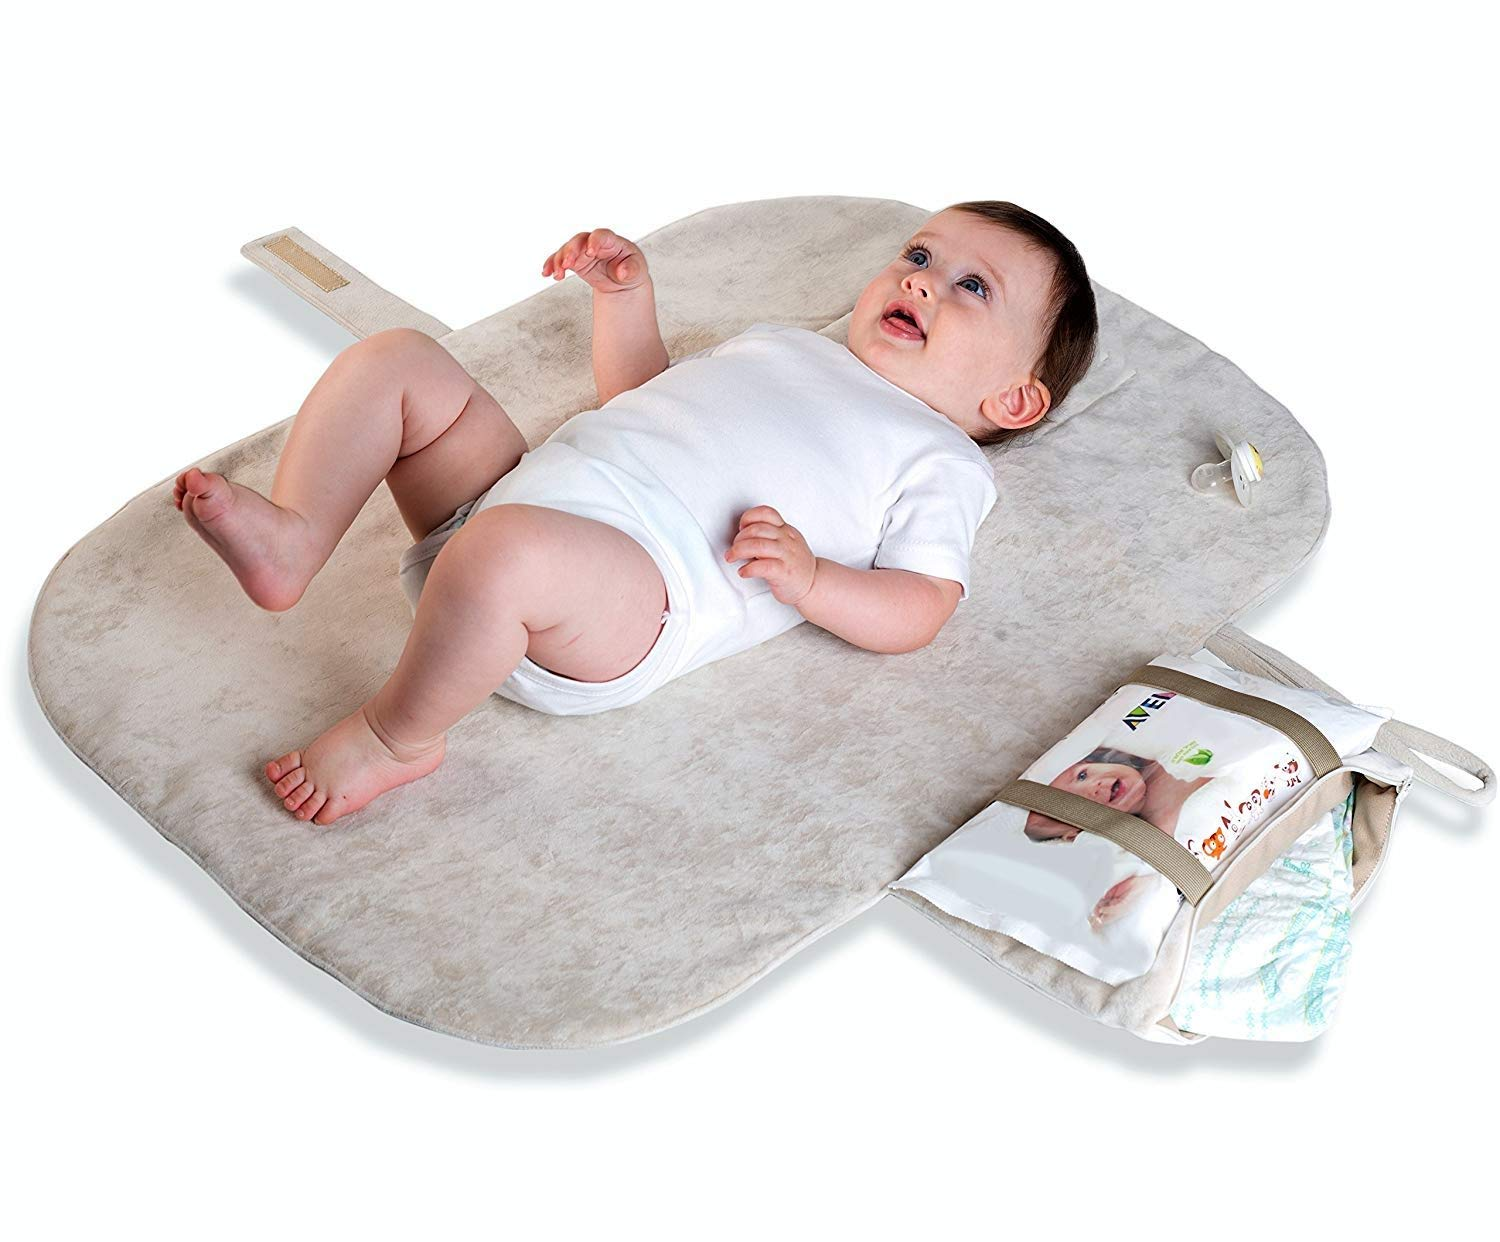 MoBaby Portable Changing Pad, Luxurious Soft-as-Suede Change Clutch, Oeko-TEX Certified, Machine Washable, Chic & Cushioned for Baby, Infant, & Newborn, Light Gray color